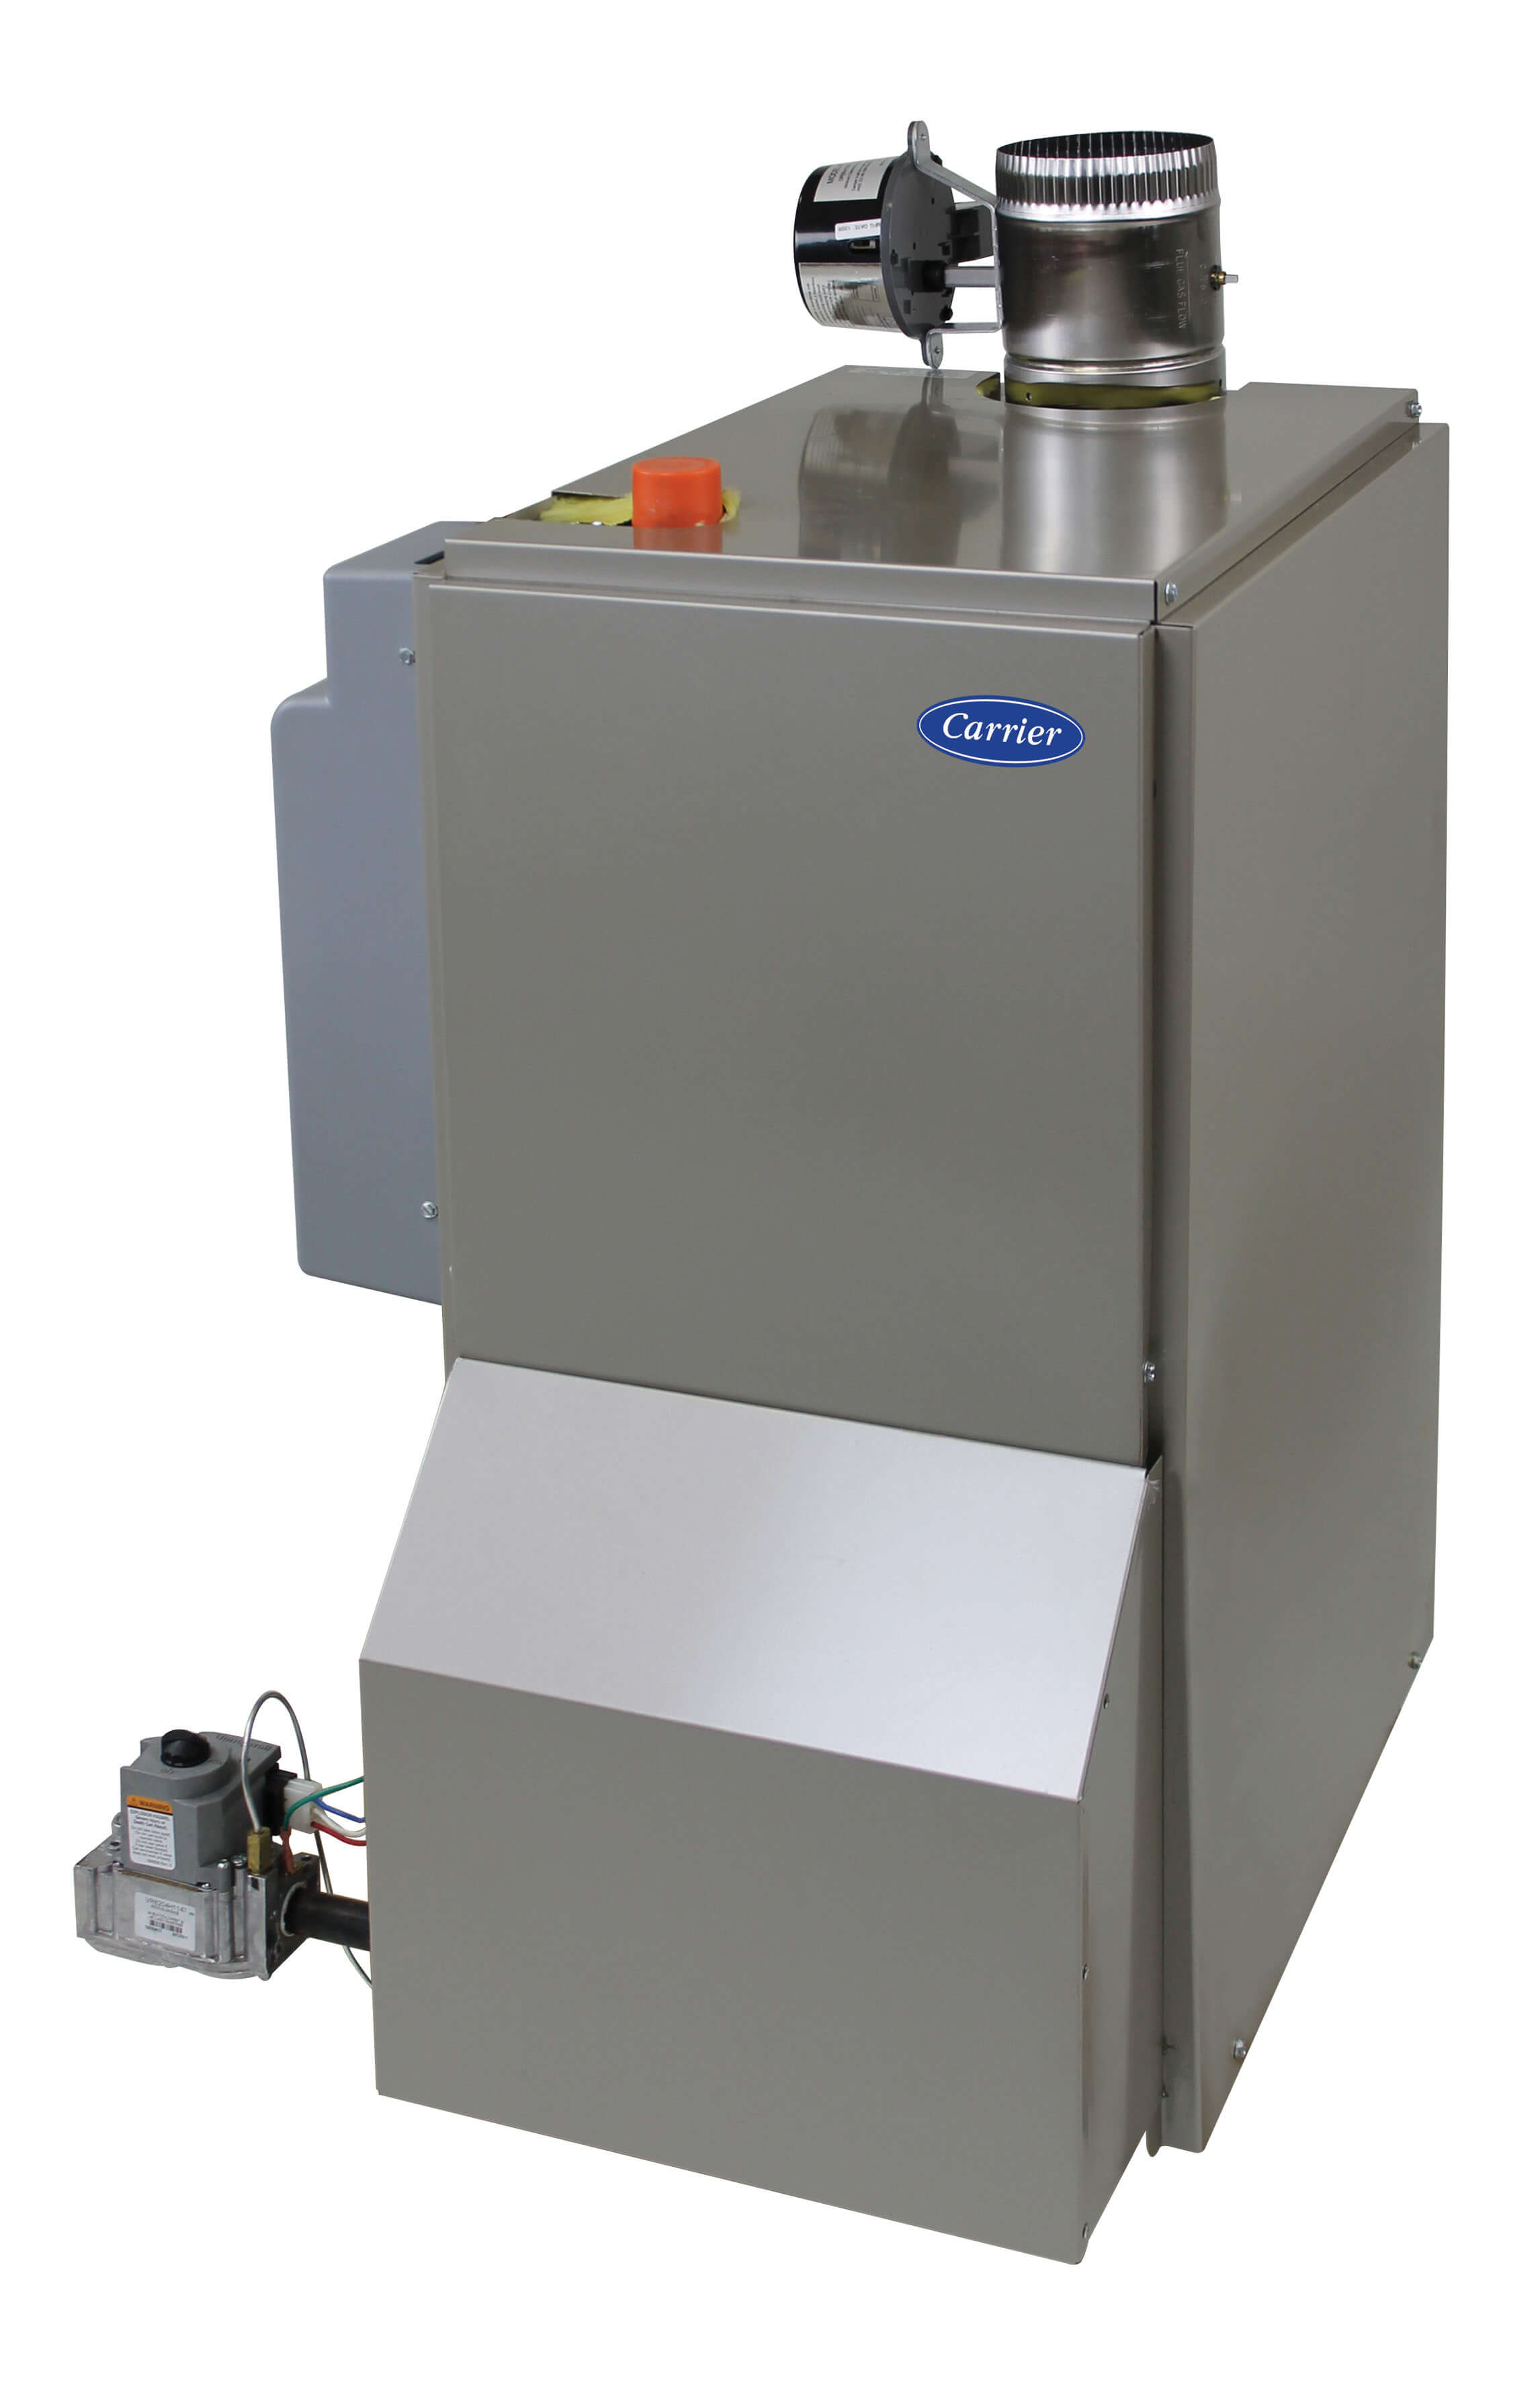 Commercial boiler from Degree Heating & Cooling